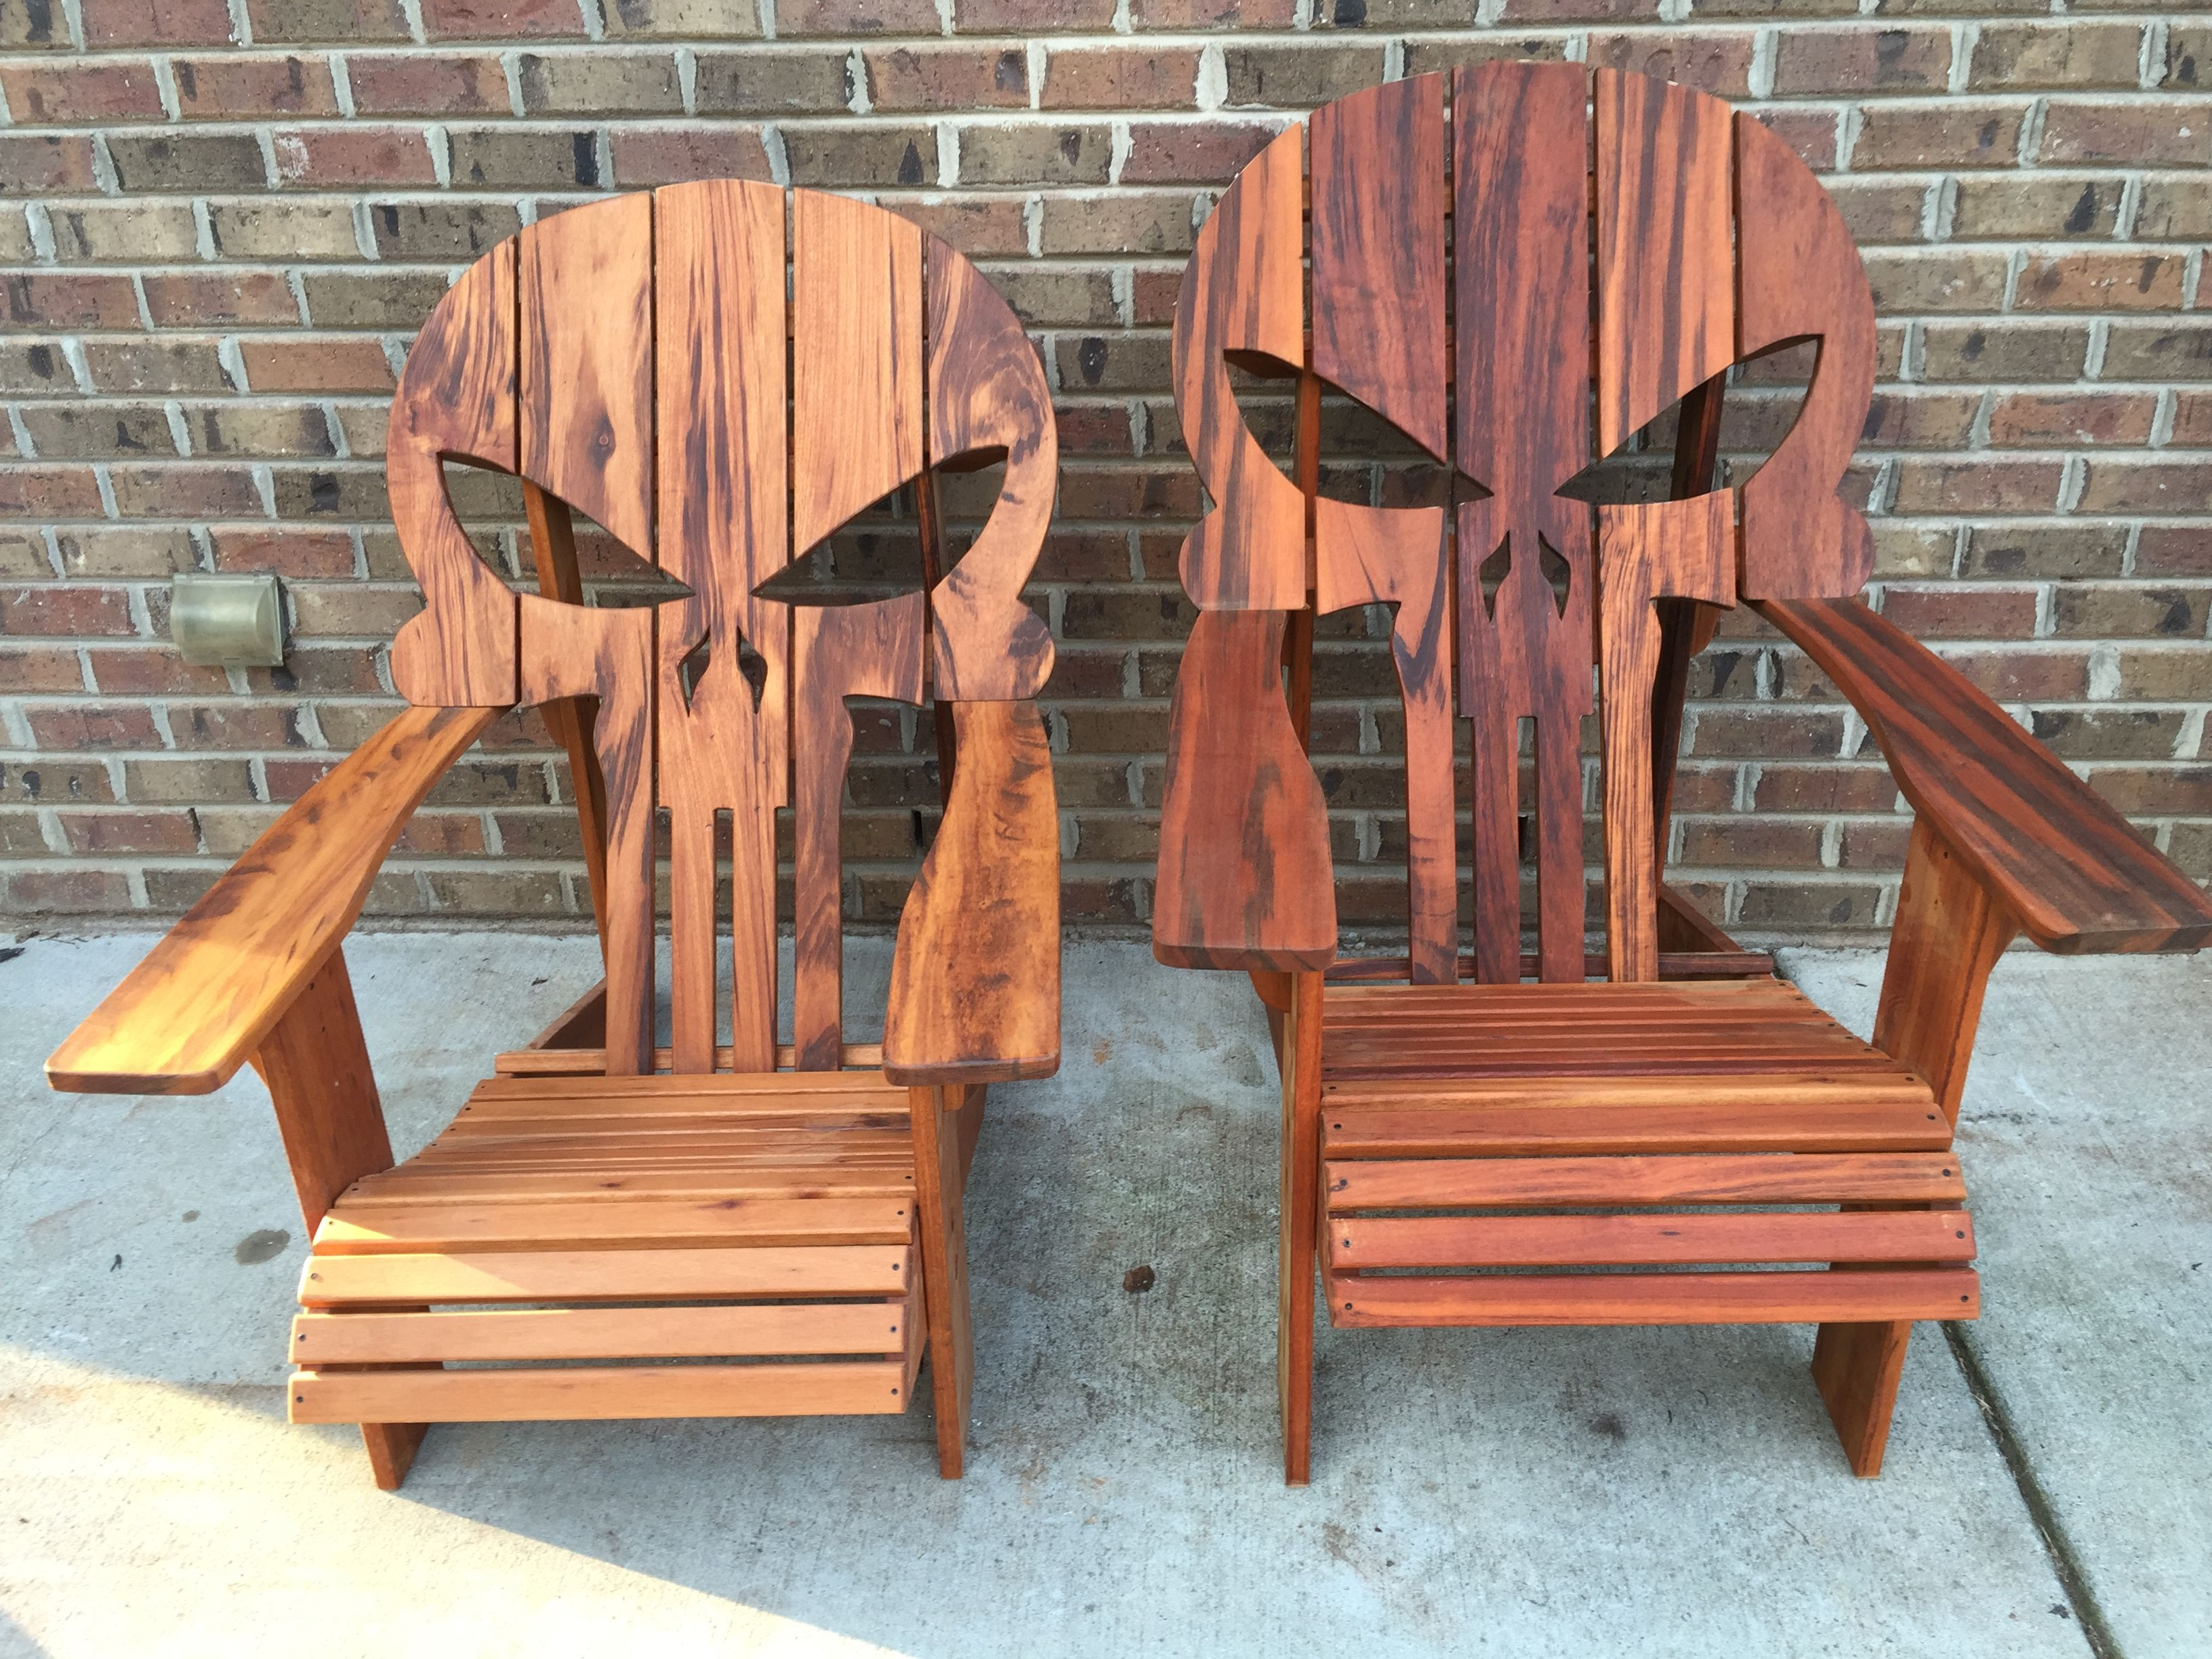 Diy Easy Step By Step Plans To Build Your Own Punisher Chairs Skull Furniture Diy Chair Adirondack Chairs Diy